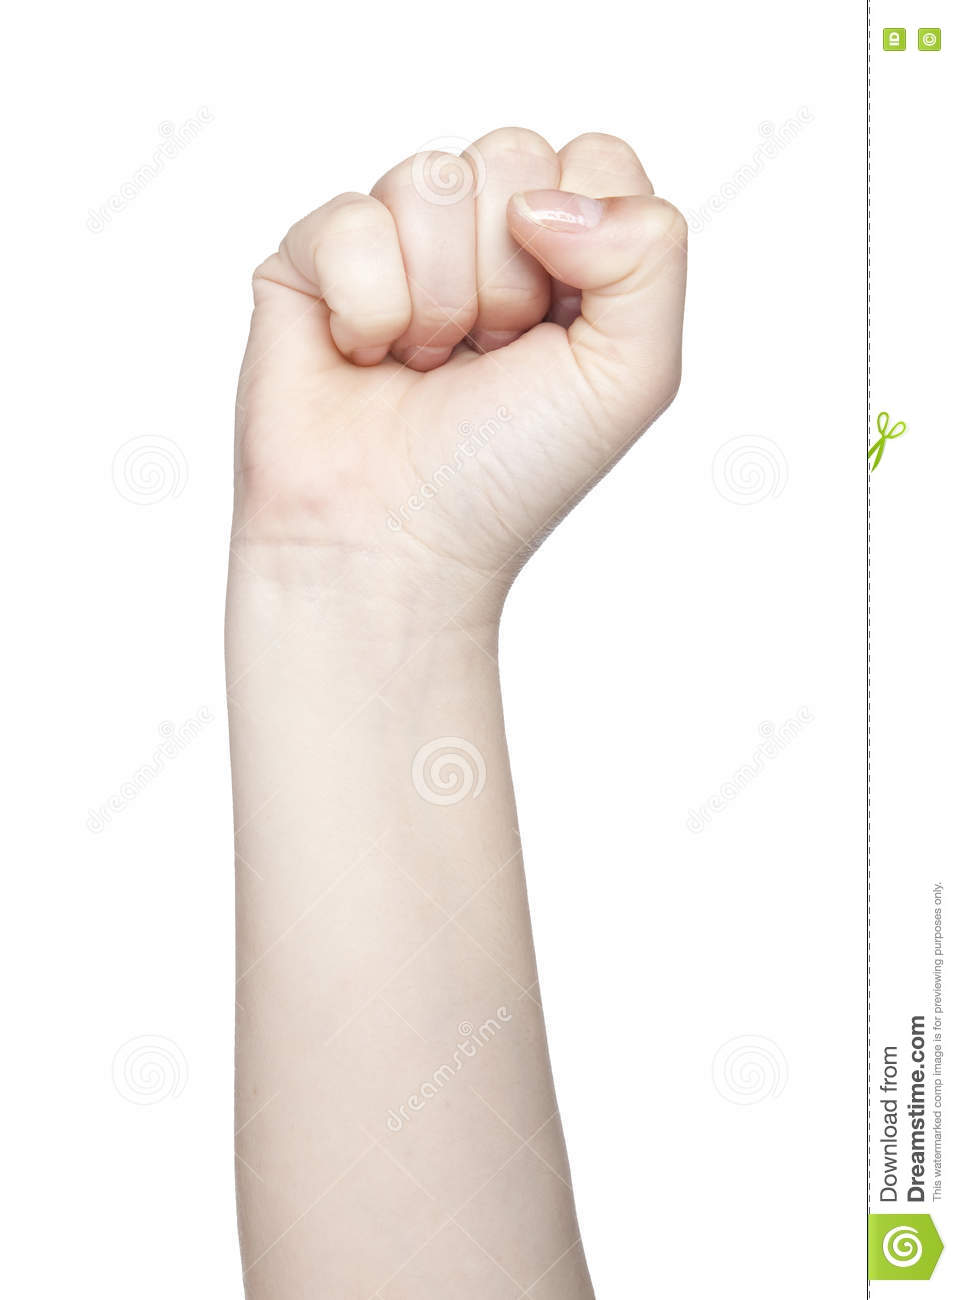 Clenched fist a symbol of strength and violence isolated on wh royalty free stock photo buycottarizona Choice Image